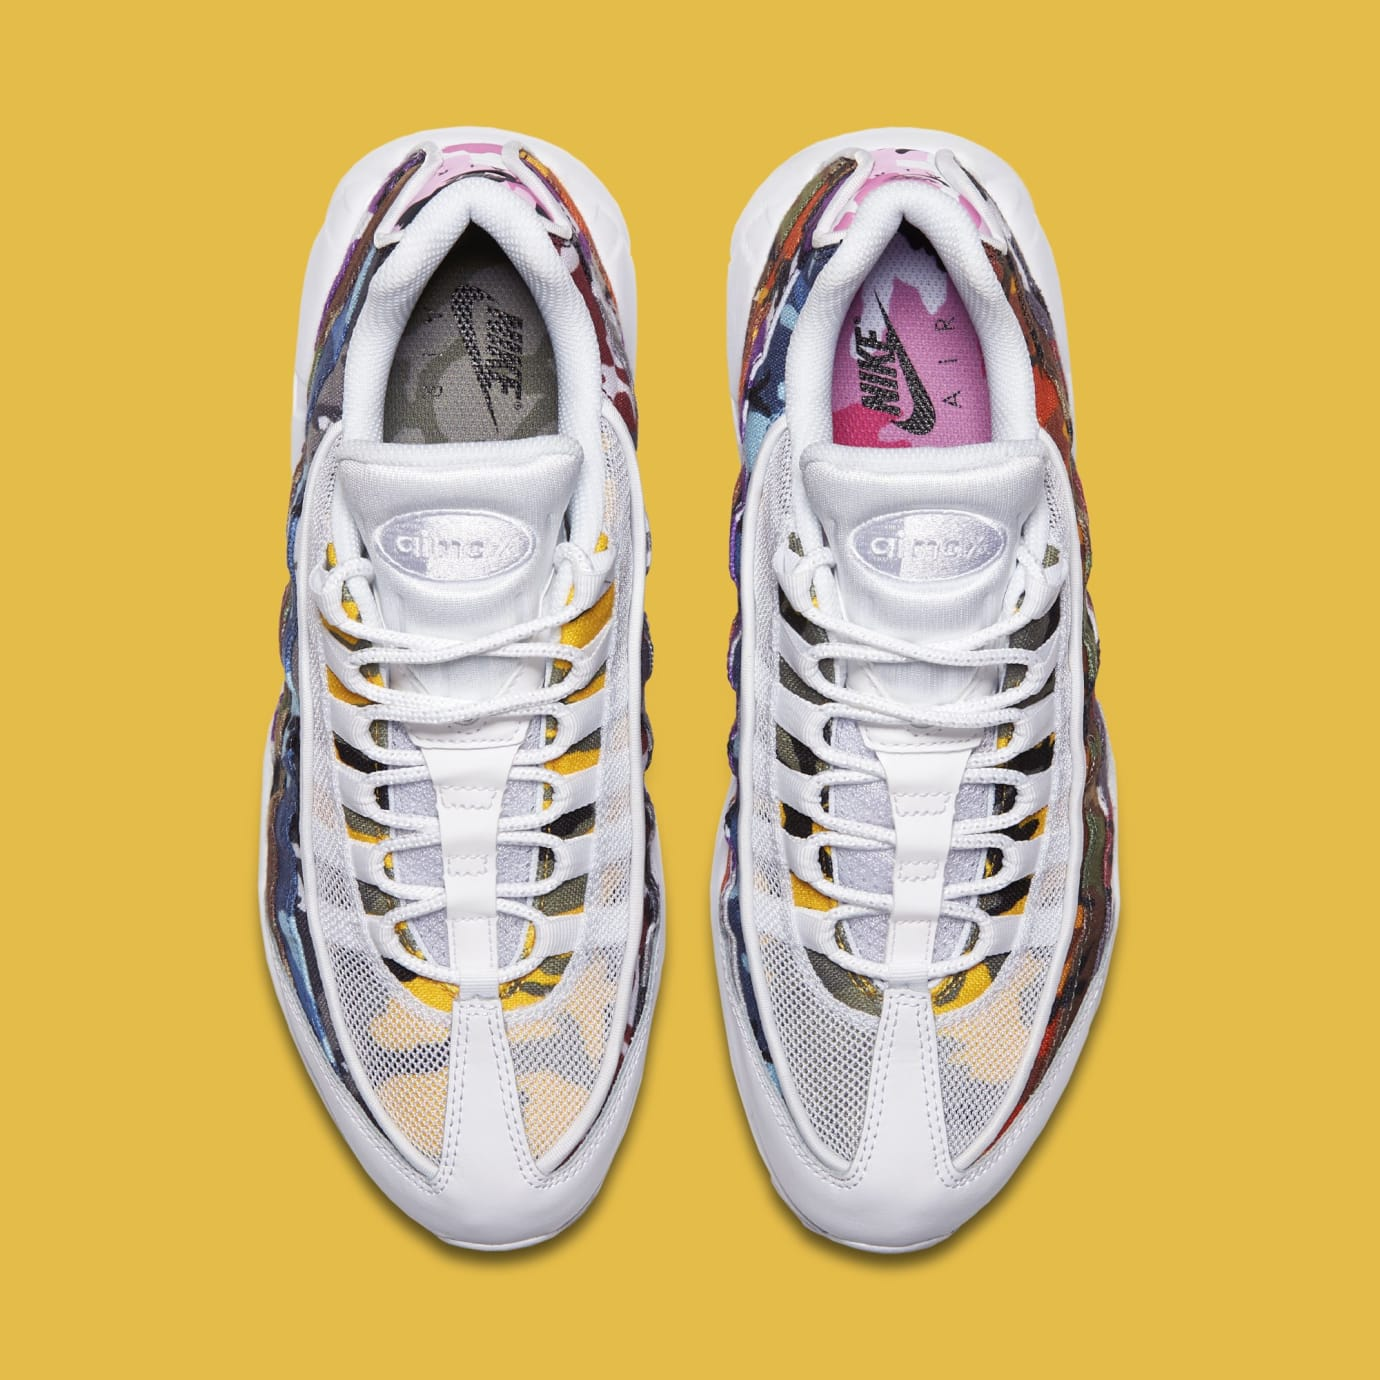 0332173cb8 Nike Air Max 95 ERDL Party Multi Color Camp White Black | Sole Collector